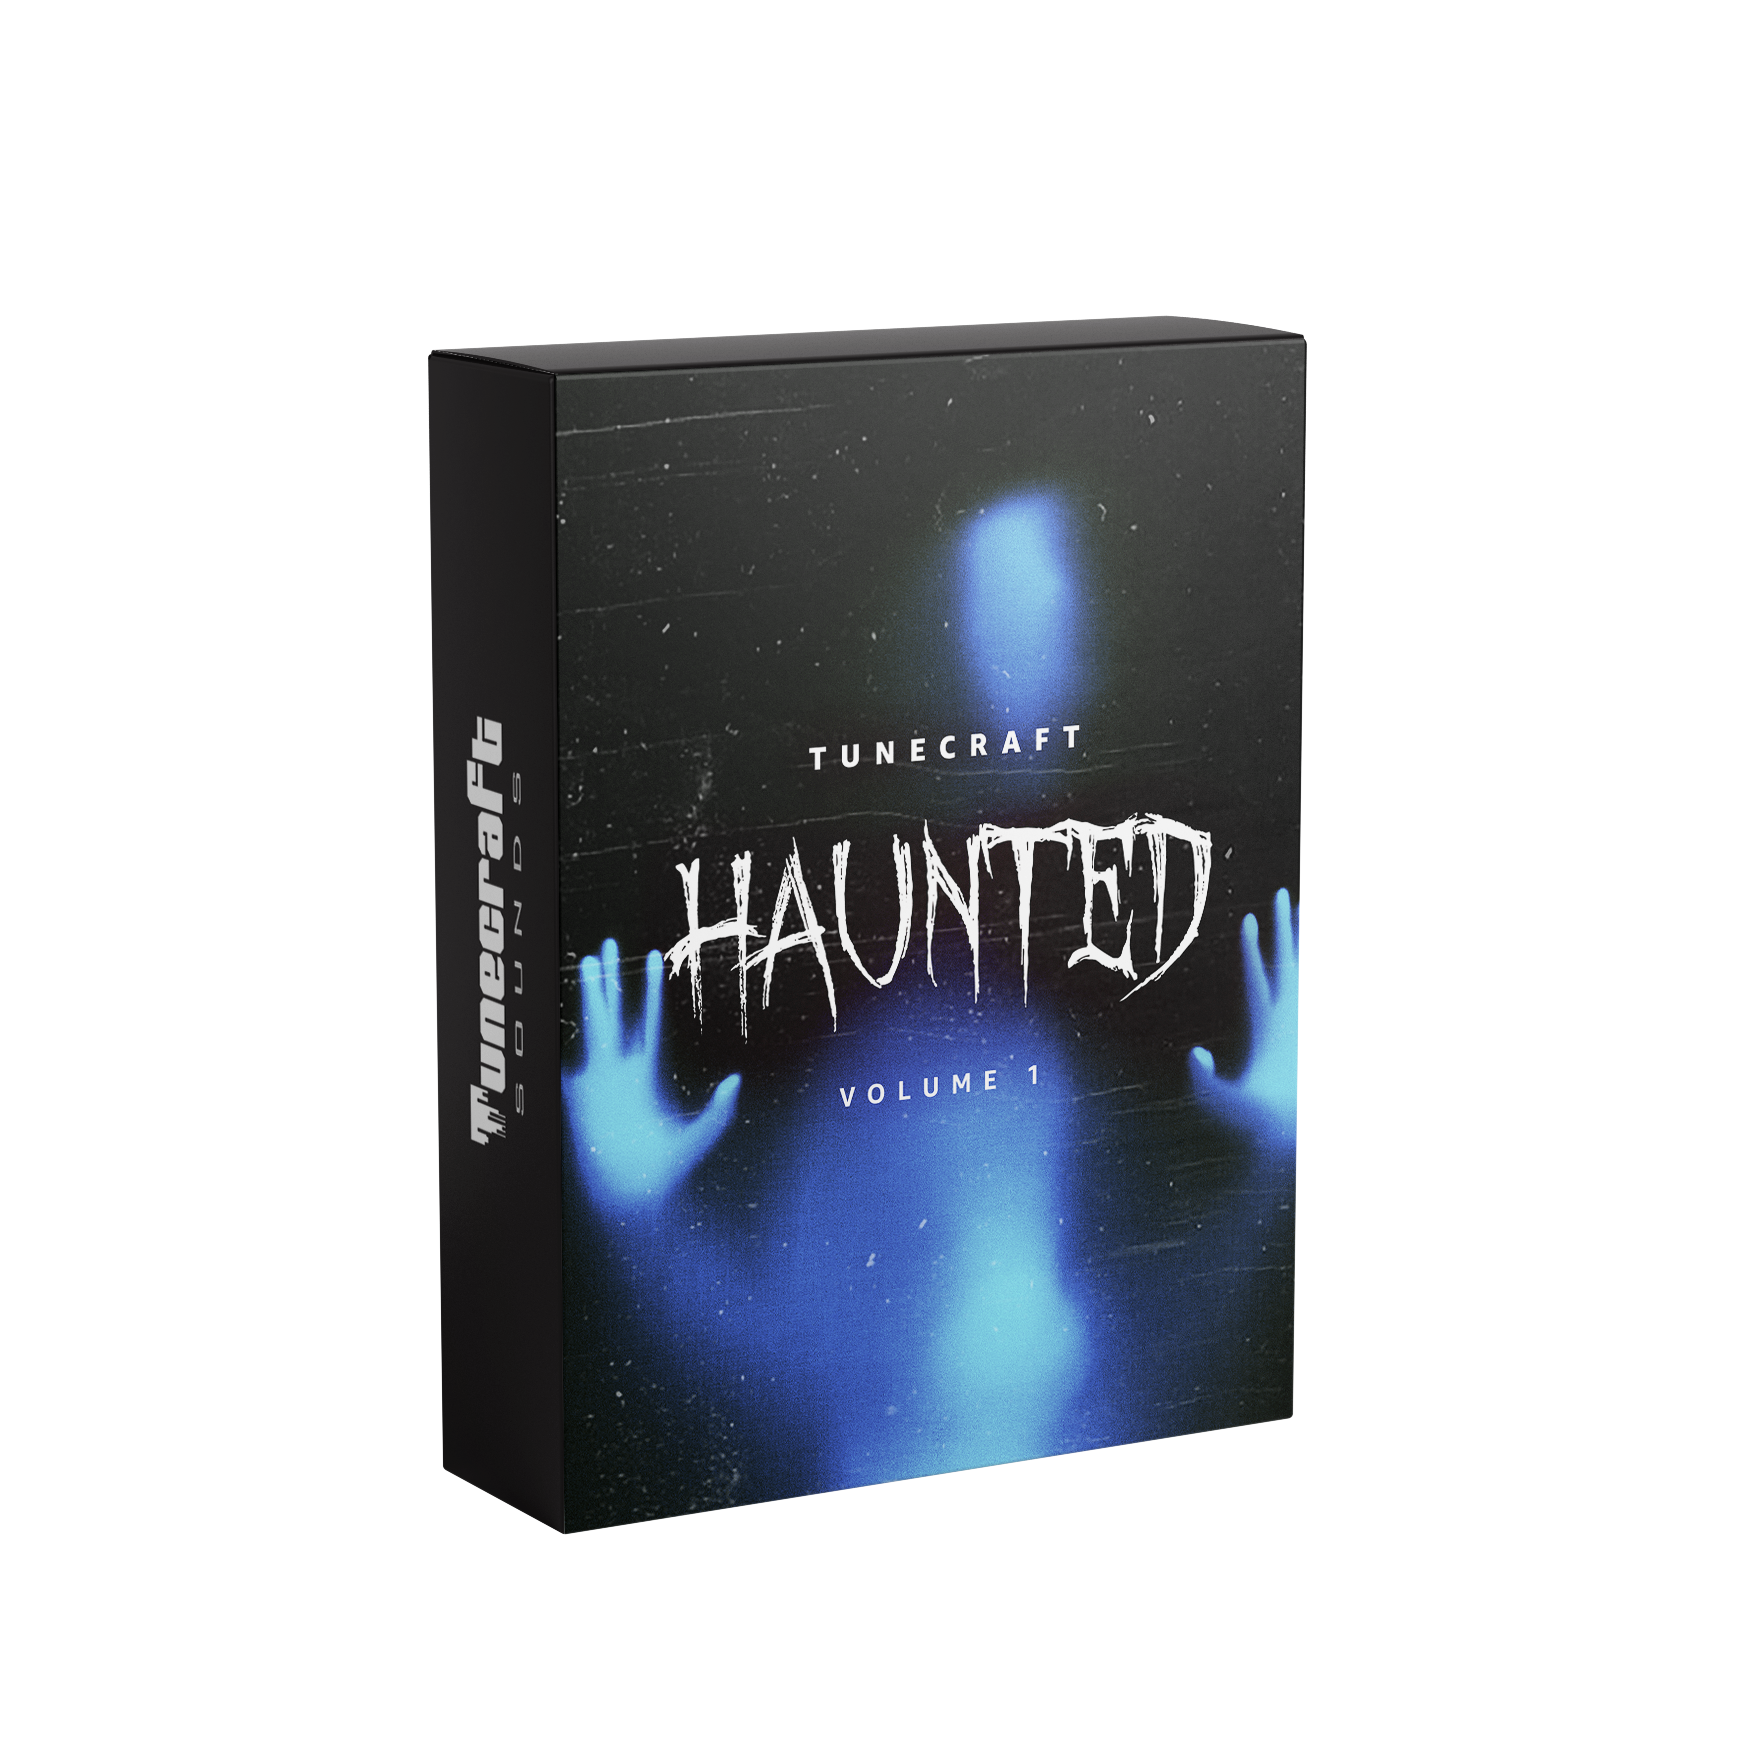 https://www.tunecraft-sounds.com/wp-content/uploads/2019/10/Haunted-3D-box-NS.png